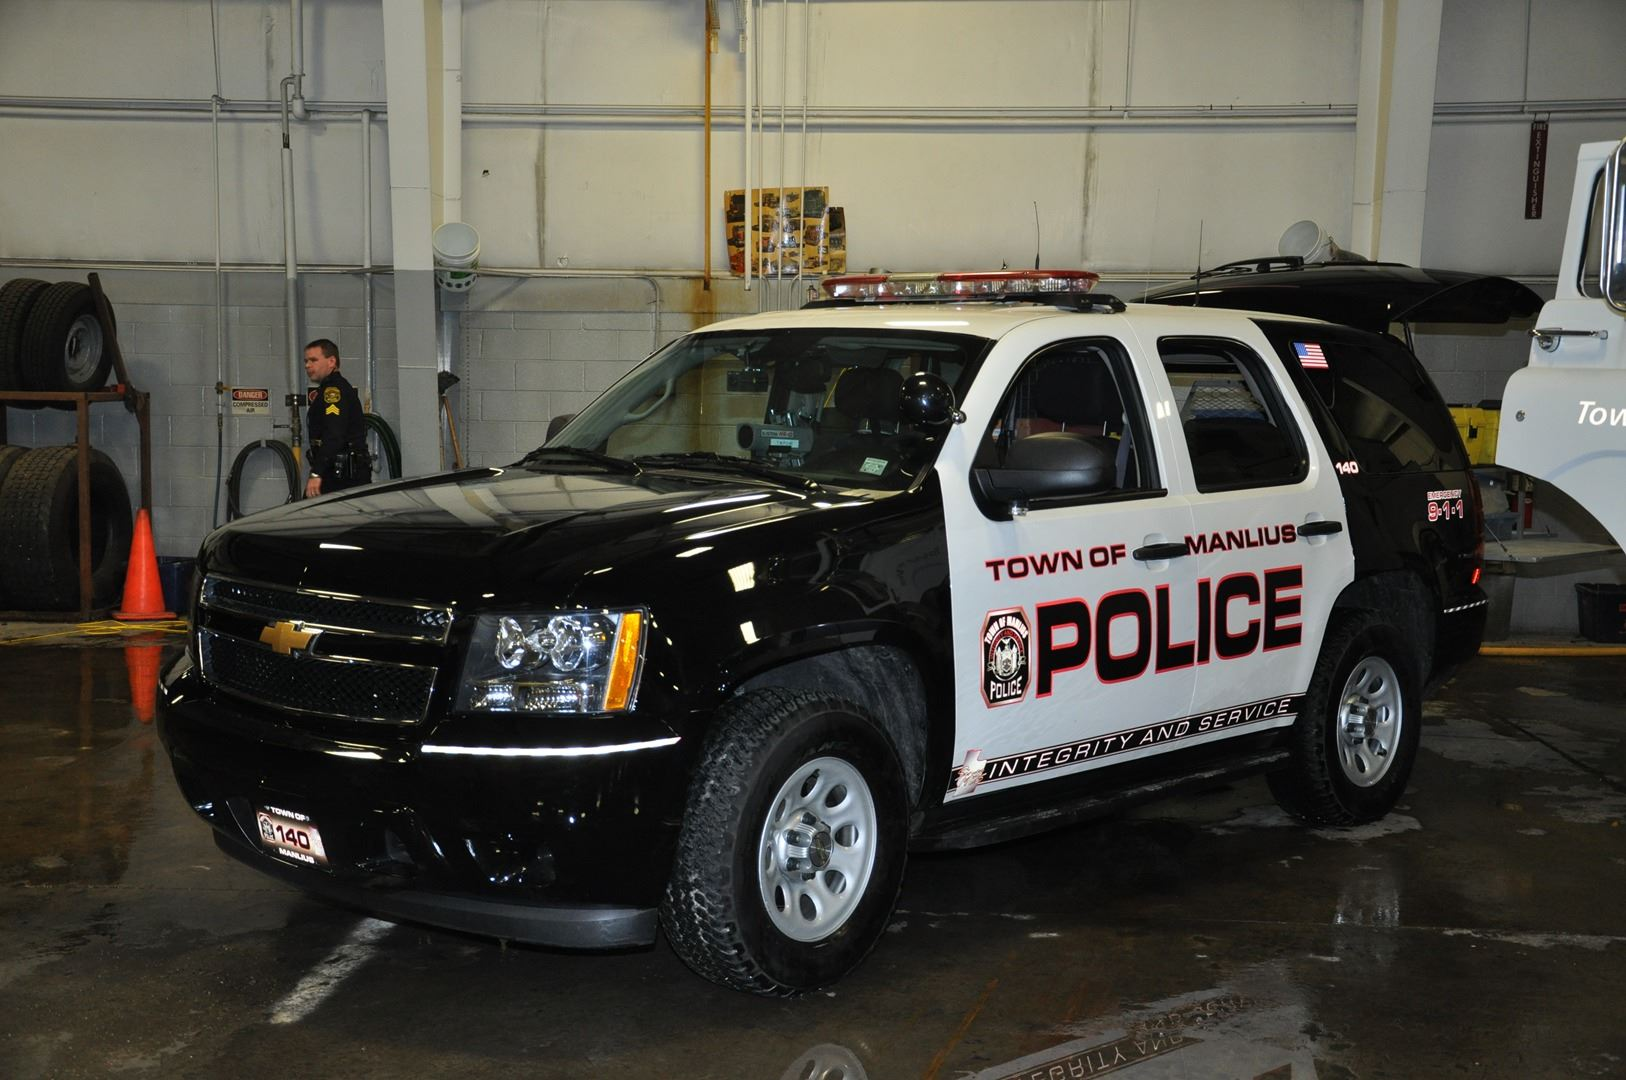 A police vehicle in a garage